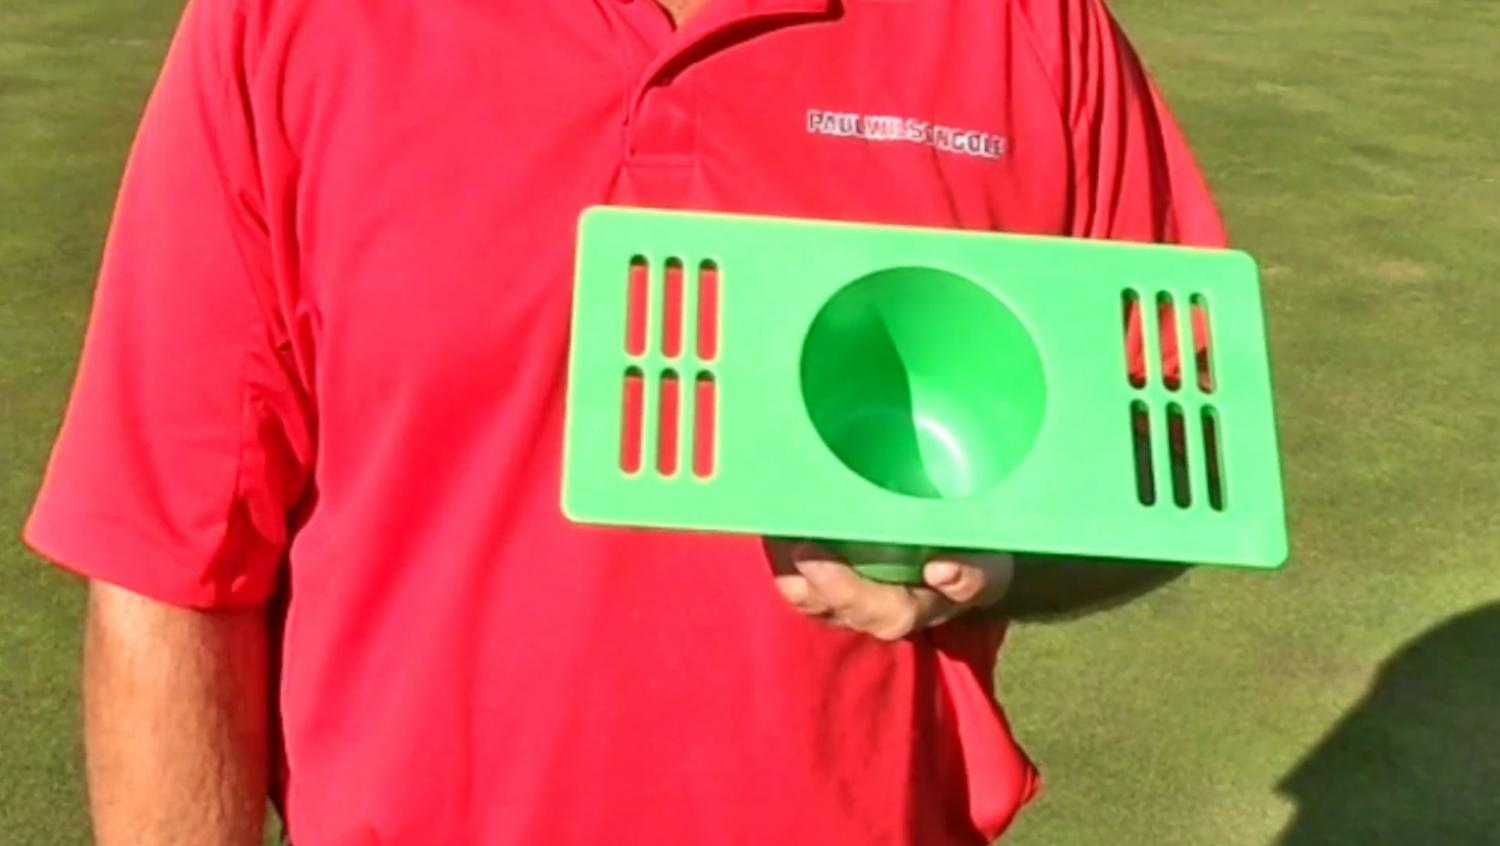 Puttacup Putting Cup Vent Replacement - Turns your HVAC vent cover into a putting hole